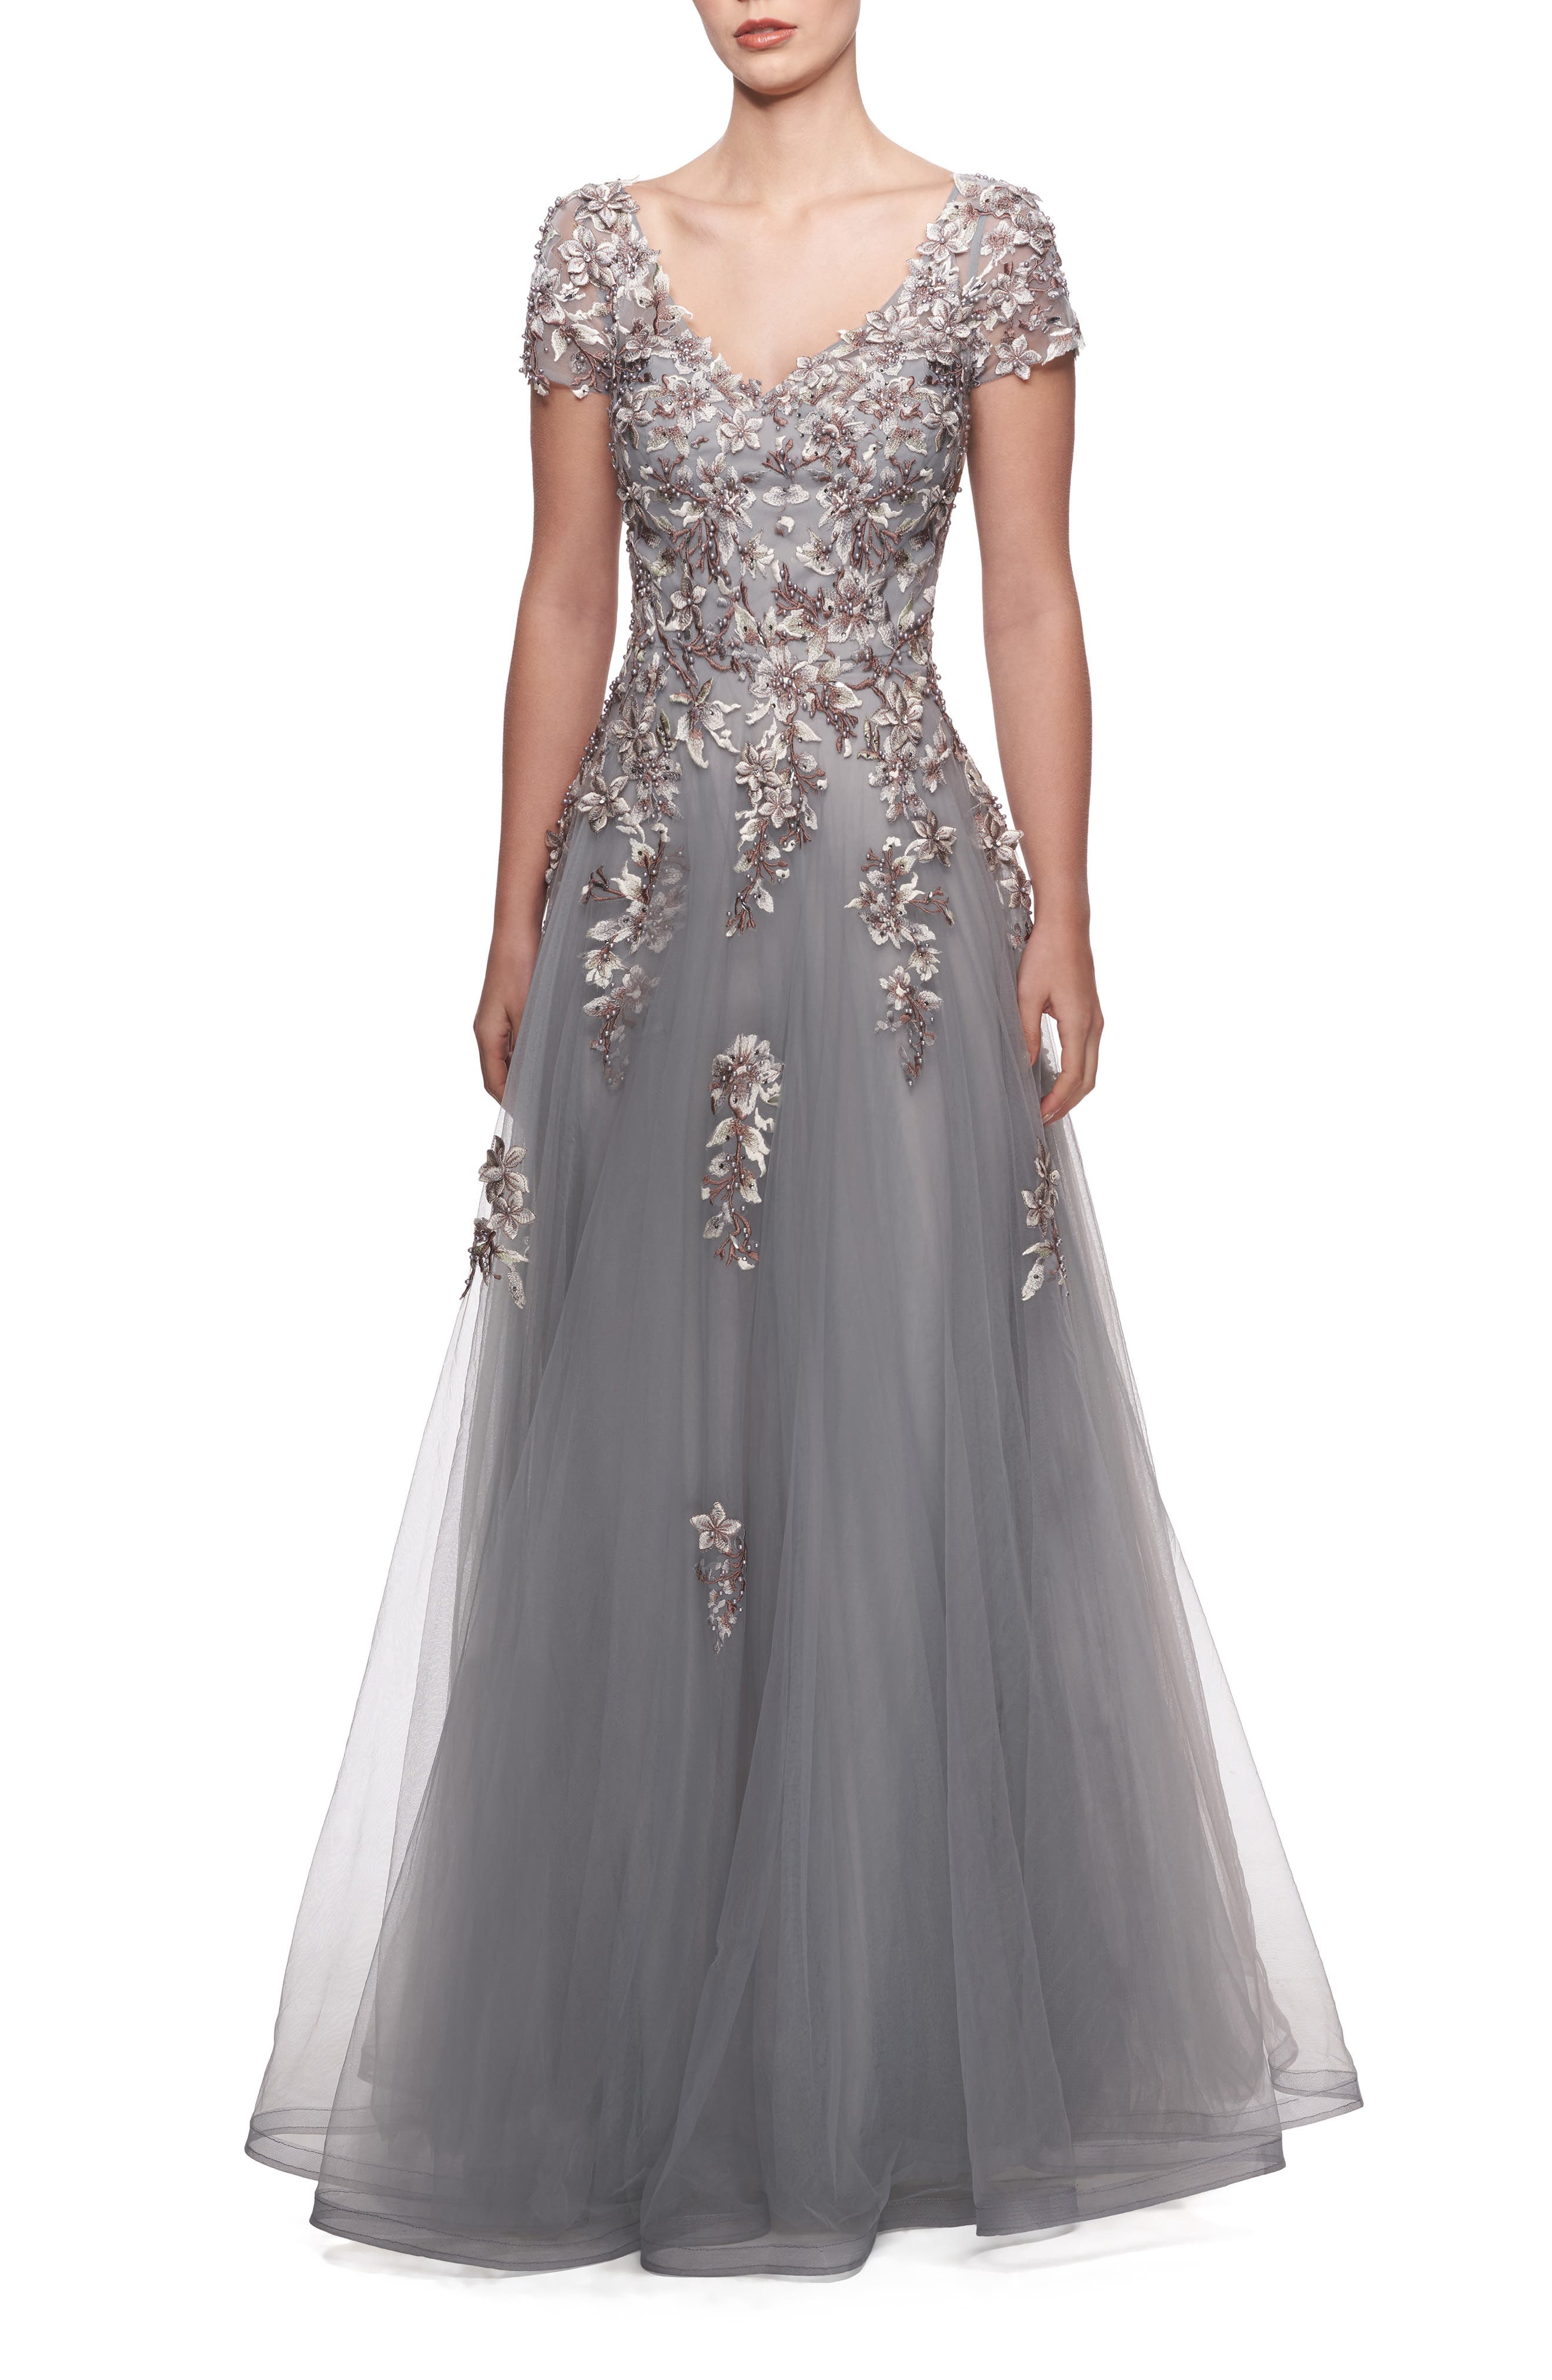 Beaded Gowns,Beaded Gowns,Beaded Dresses for Women Gowns, Long Beaded Dresses,Long Beaded Dresses,pink tulle dress women,Long Beaded Dresses,Long Tulle Dresses,Beaded Dresses for Women,beaded dress,beaded dress,